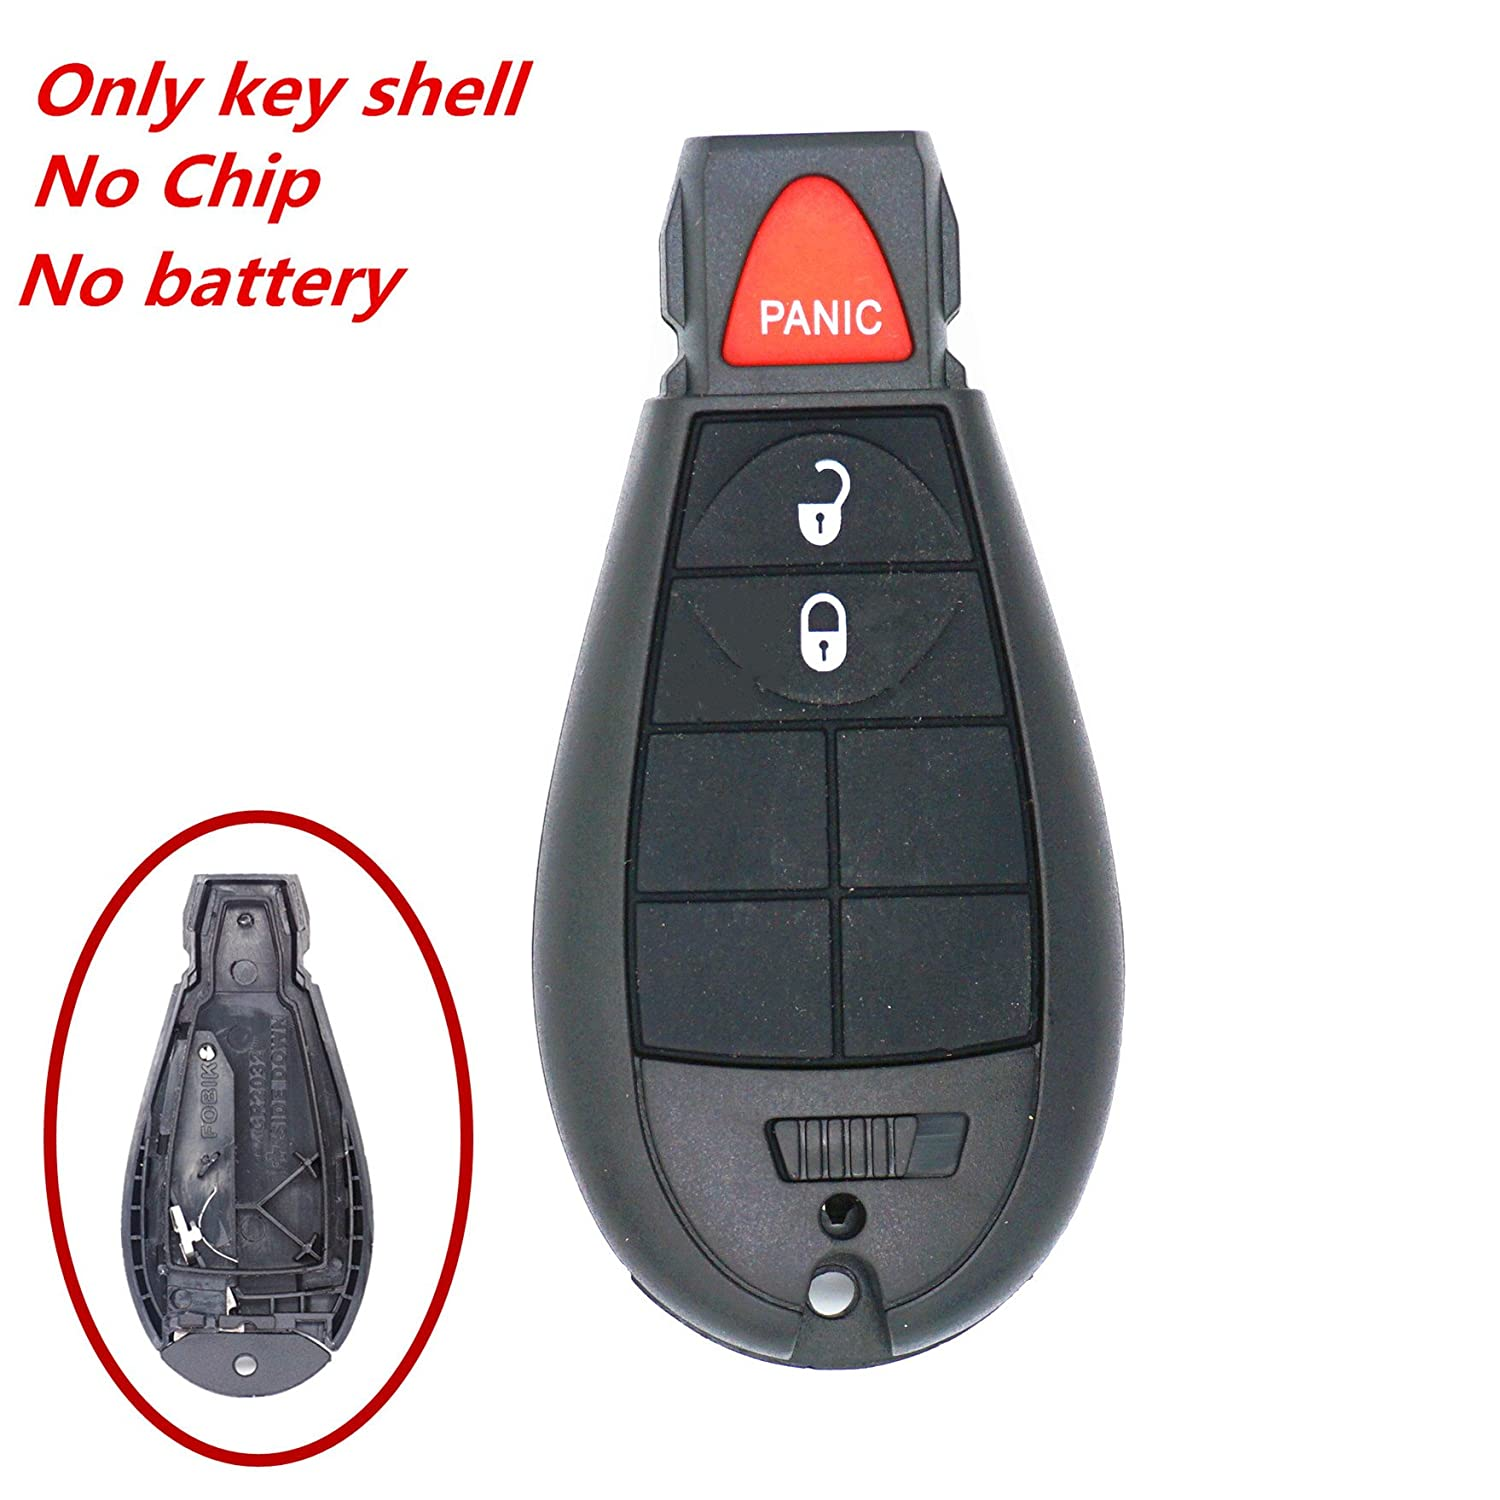 WFMJ 3 Buttons Keyless Remote Smart Key Case Chain Shell Fob for IYZ-C01C Chrysler Town /& Country Dodge Ram Truck 1500 2500 3500 Charger Durango Grand Caravan Journey Magnum Jeep Grand Cherokee